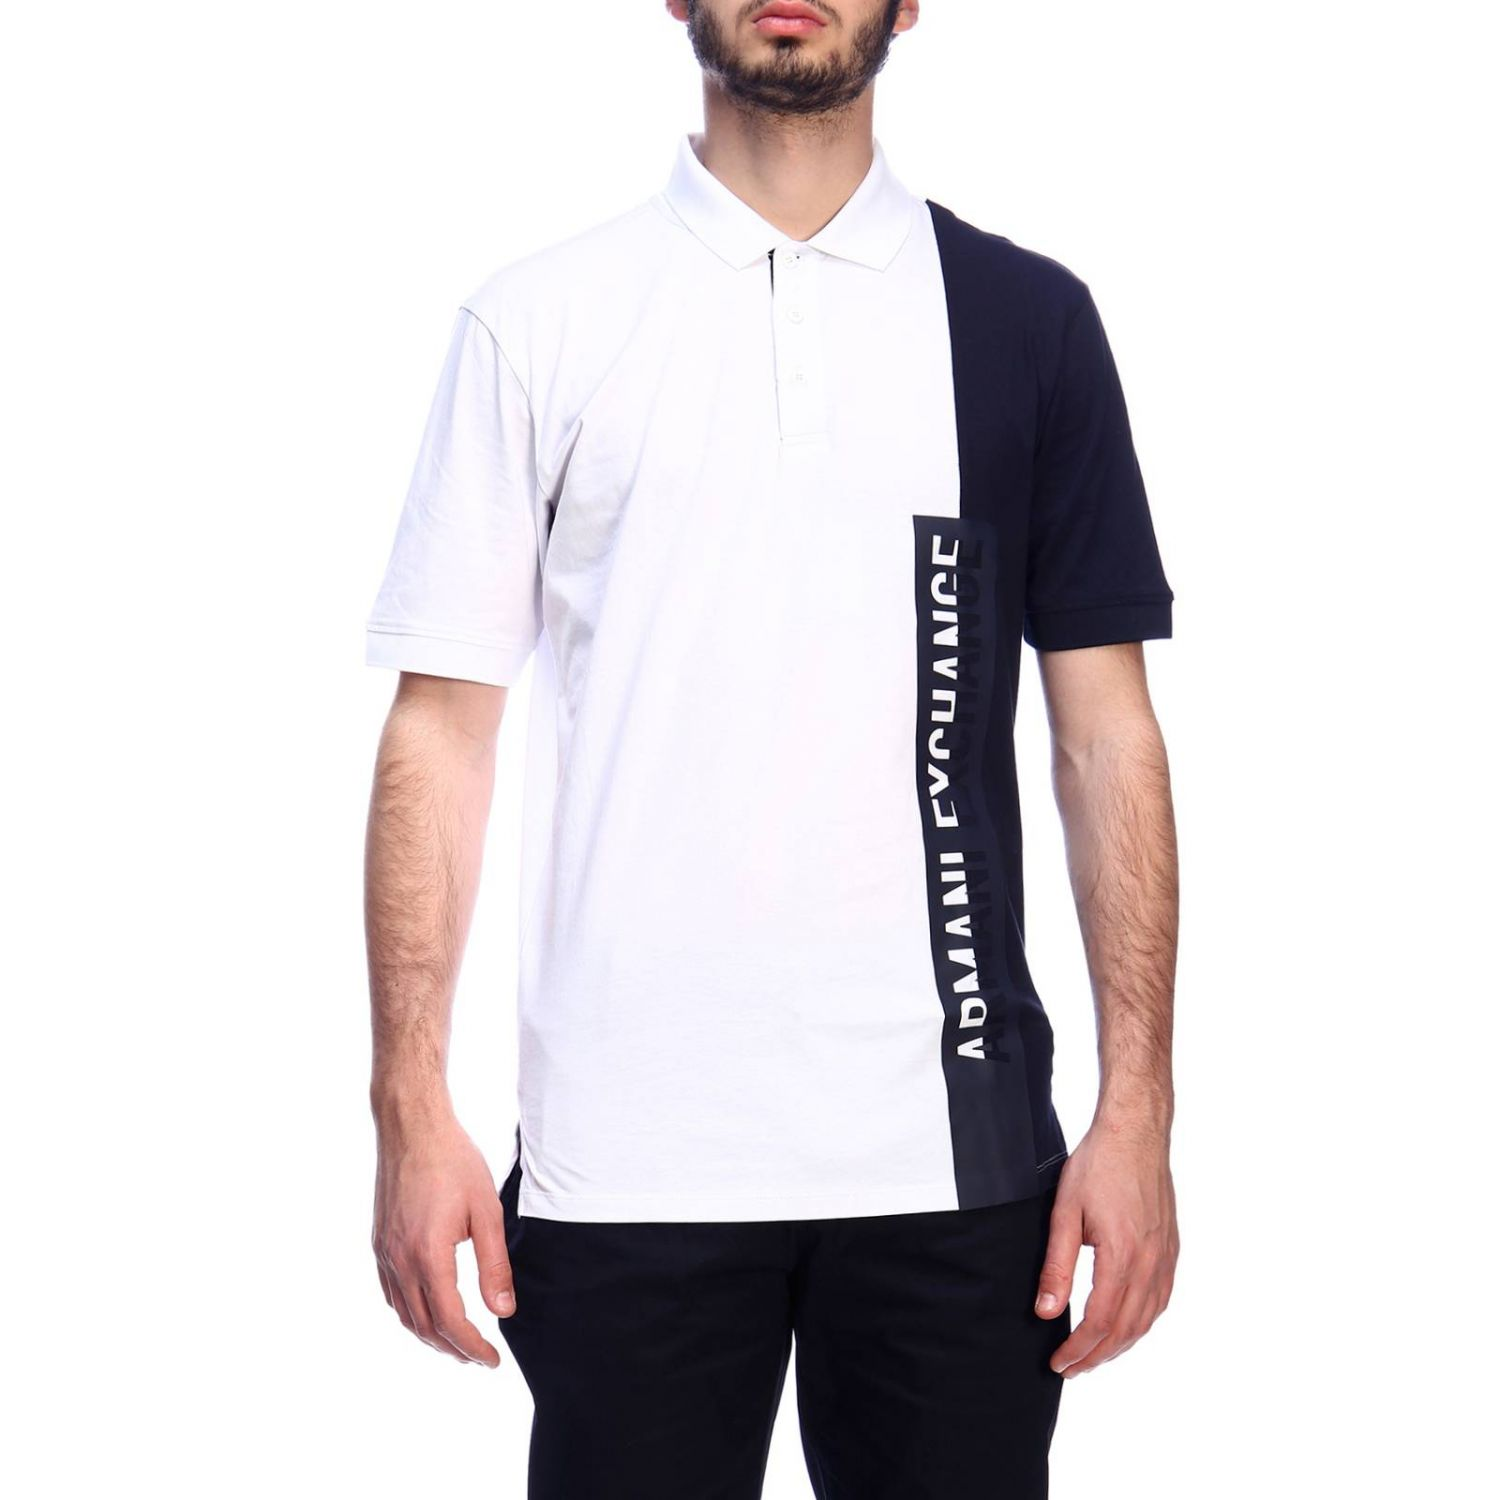 T-shirt men Armani Exchange white 1